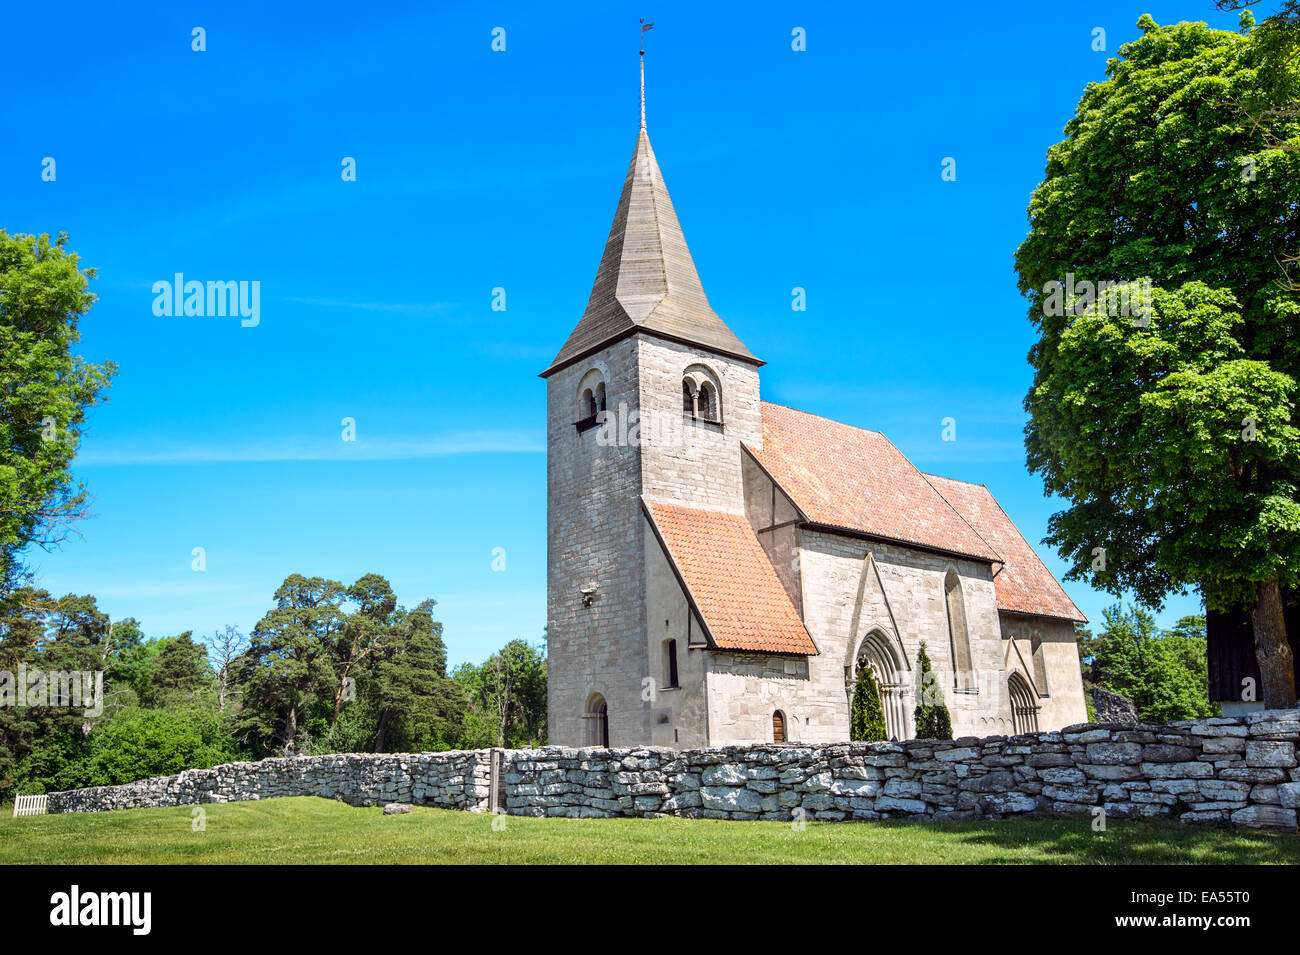 Medieval church in Gotland, Sweden - Stock Image